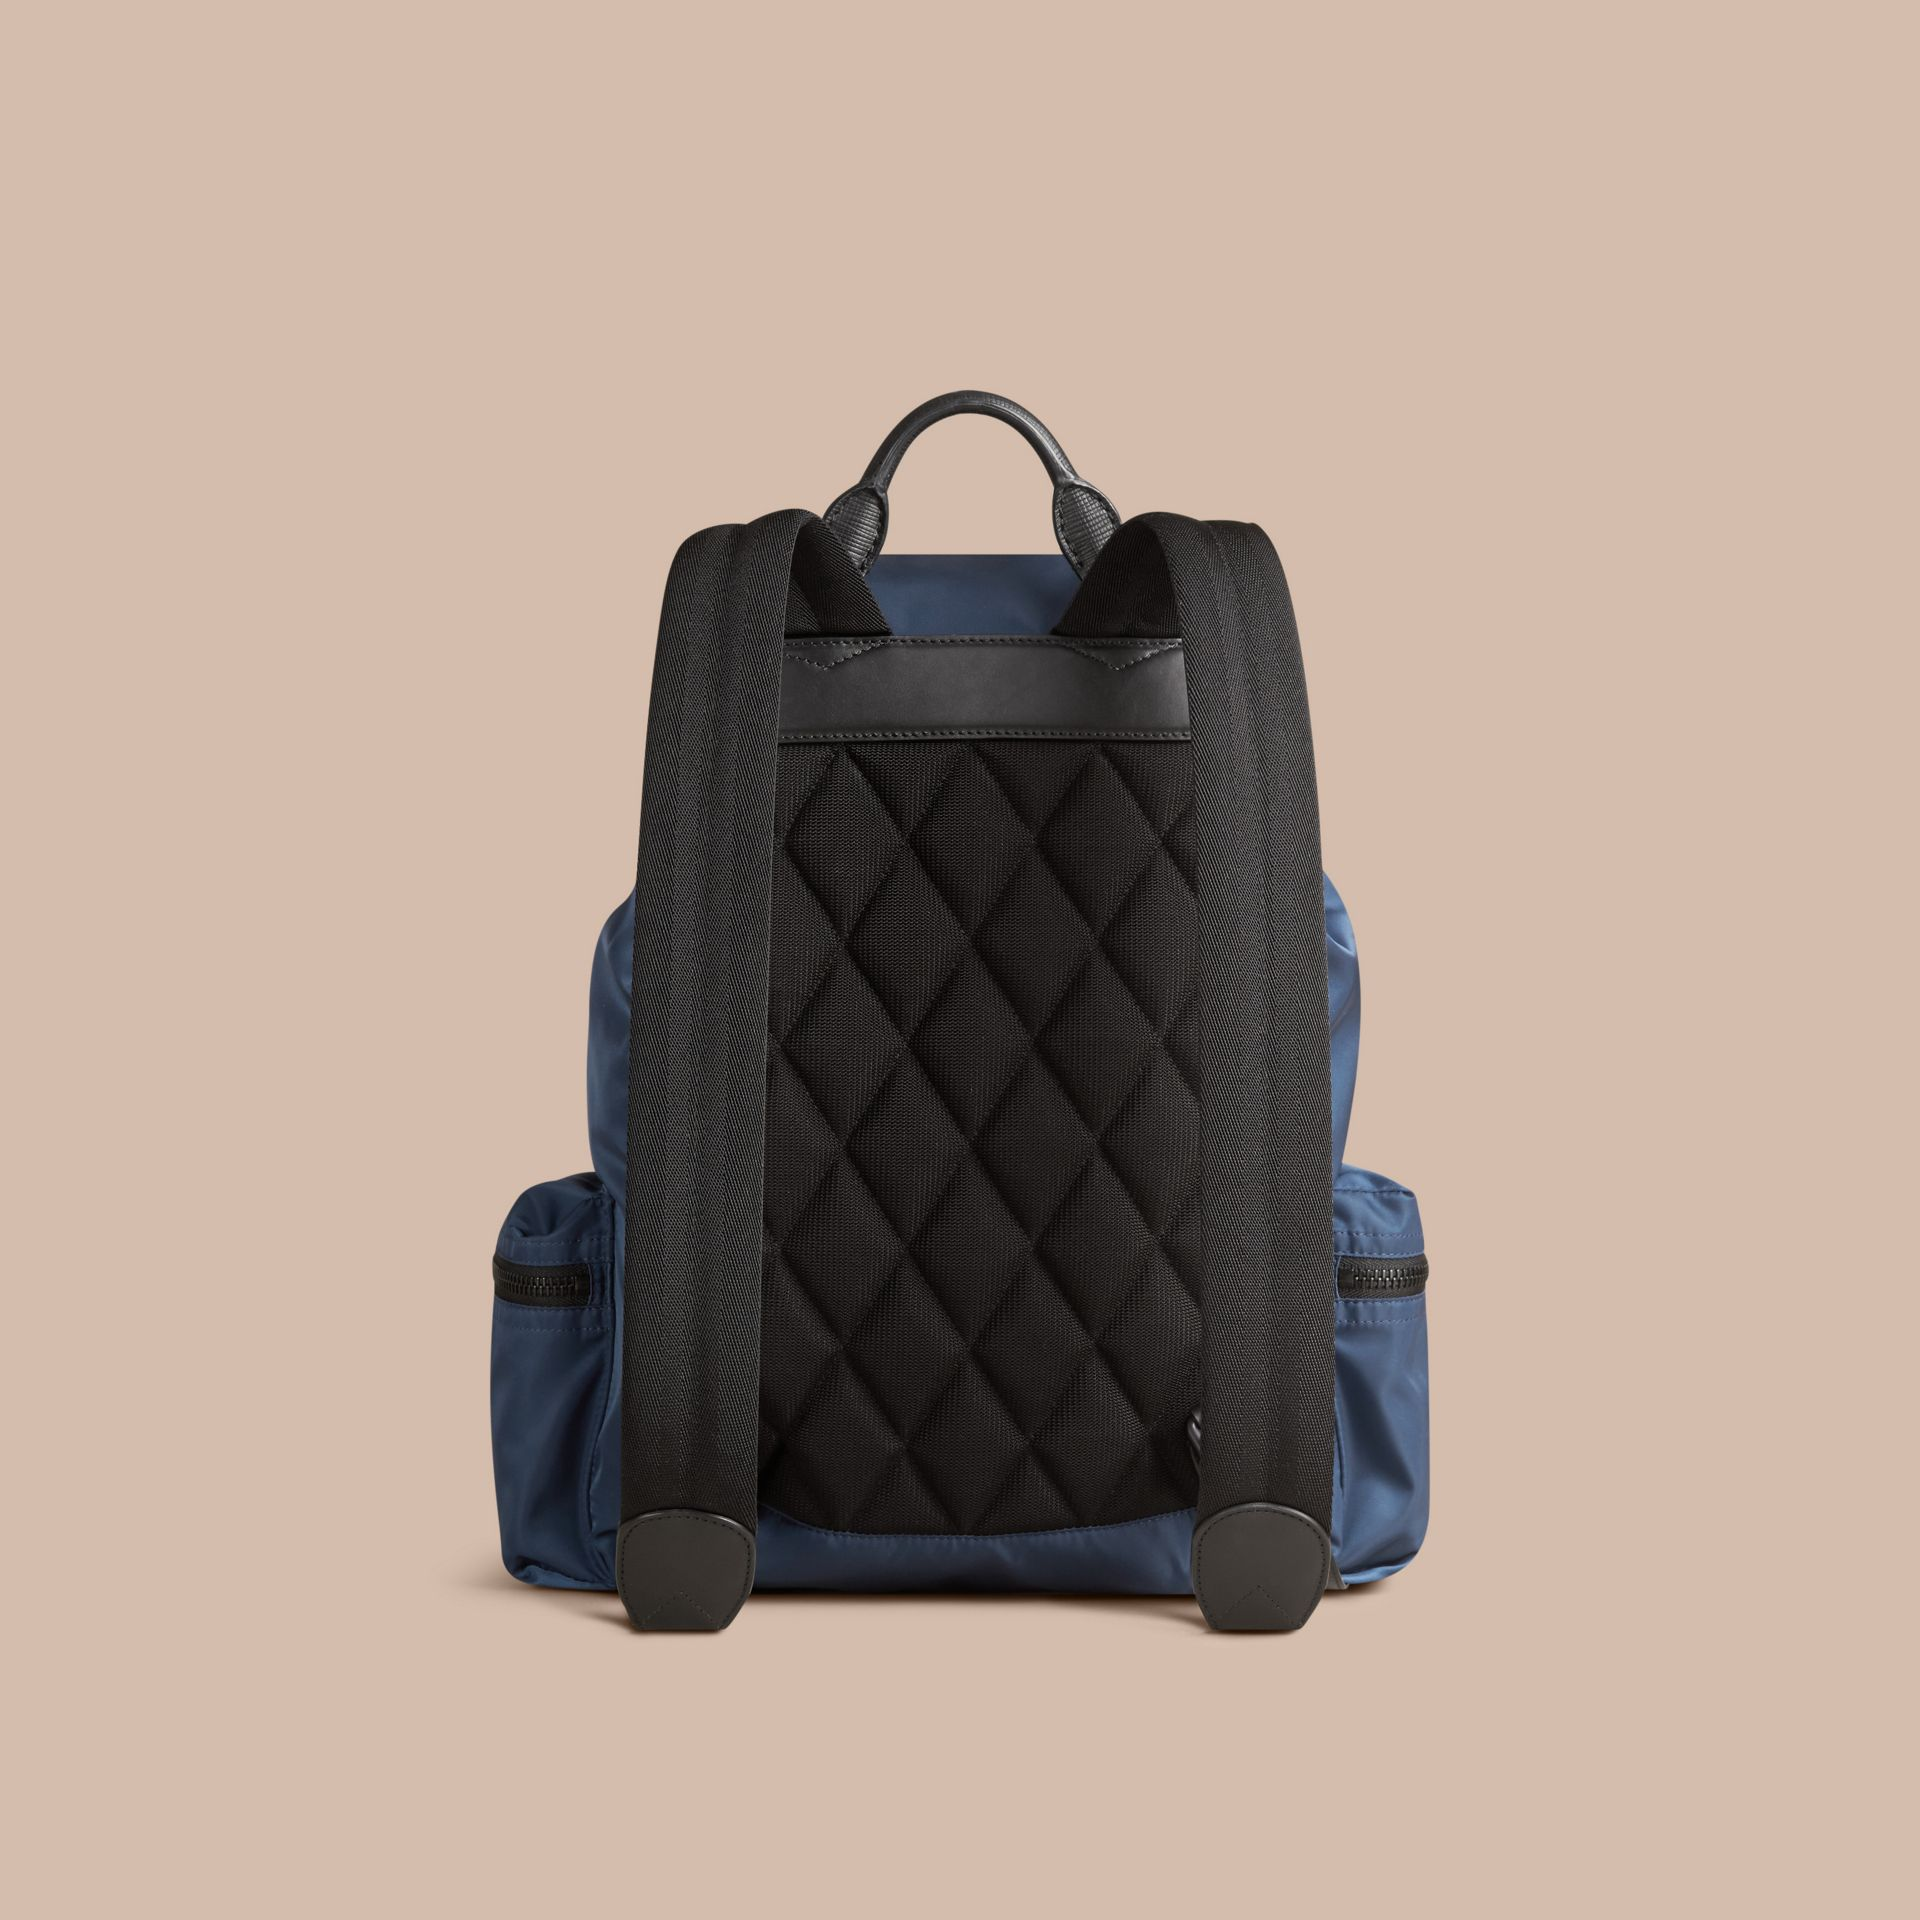 Steel blue The Large Rucksack in Technical Nylon and Leather Steel Blue - gallery image 4